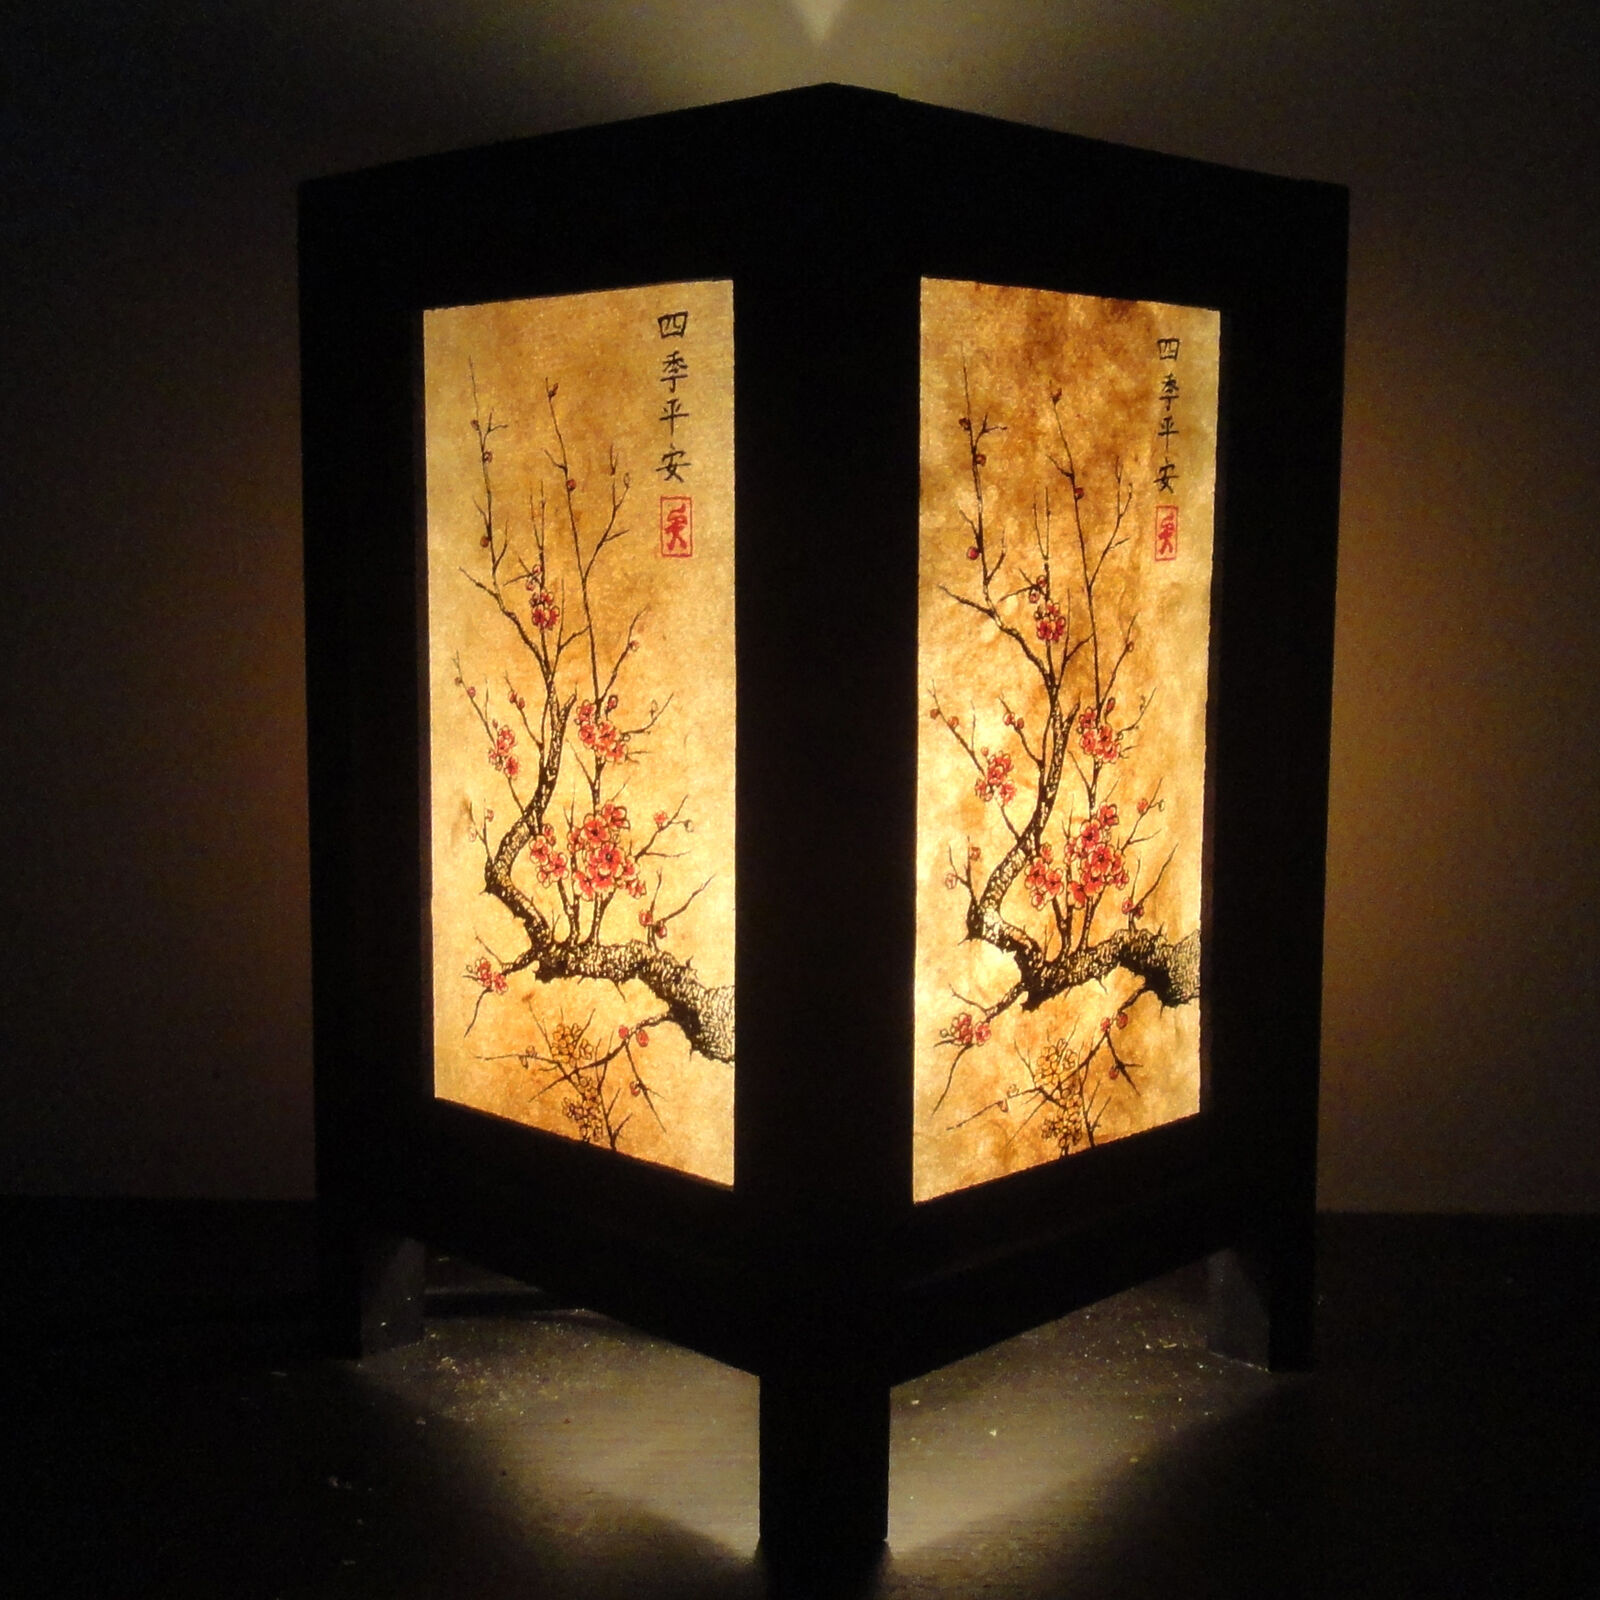 picture lamp asian sensational amazing lamps table home badotcom com for to bedroom furniture concept permalink intended